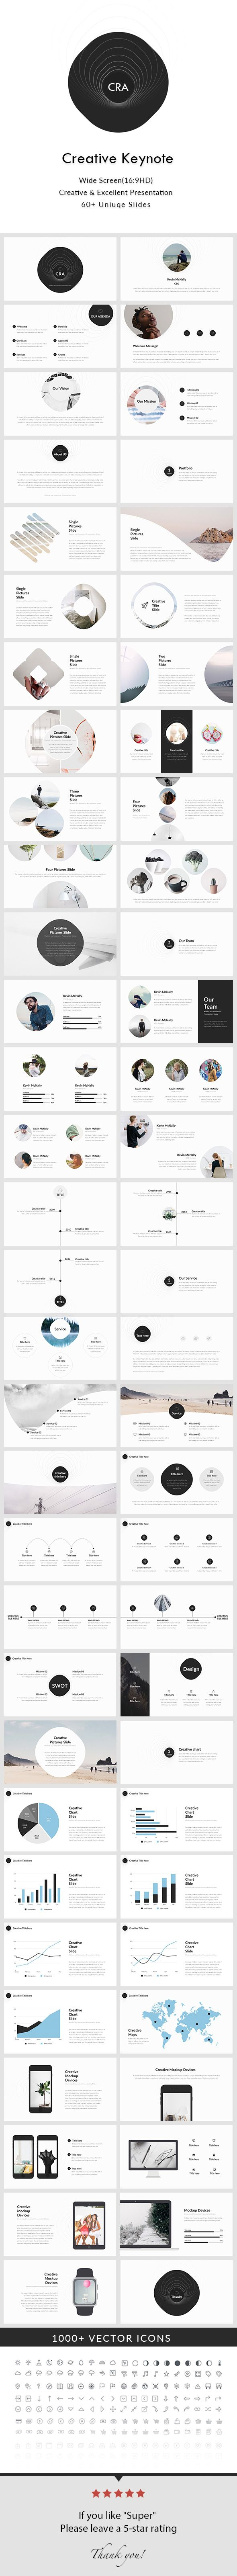 Creative - Keynote Presentation Template - Creative Keynote Templates